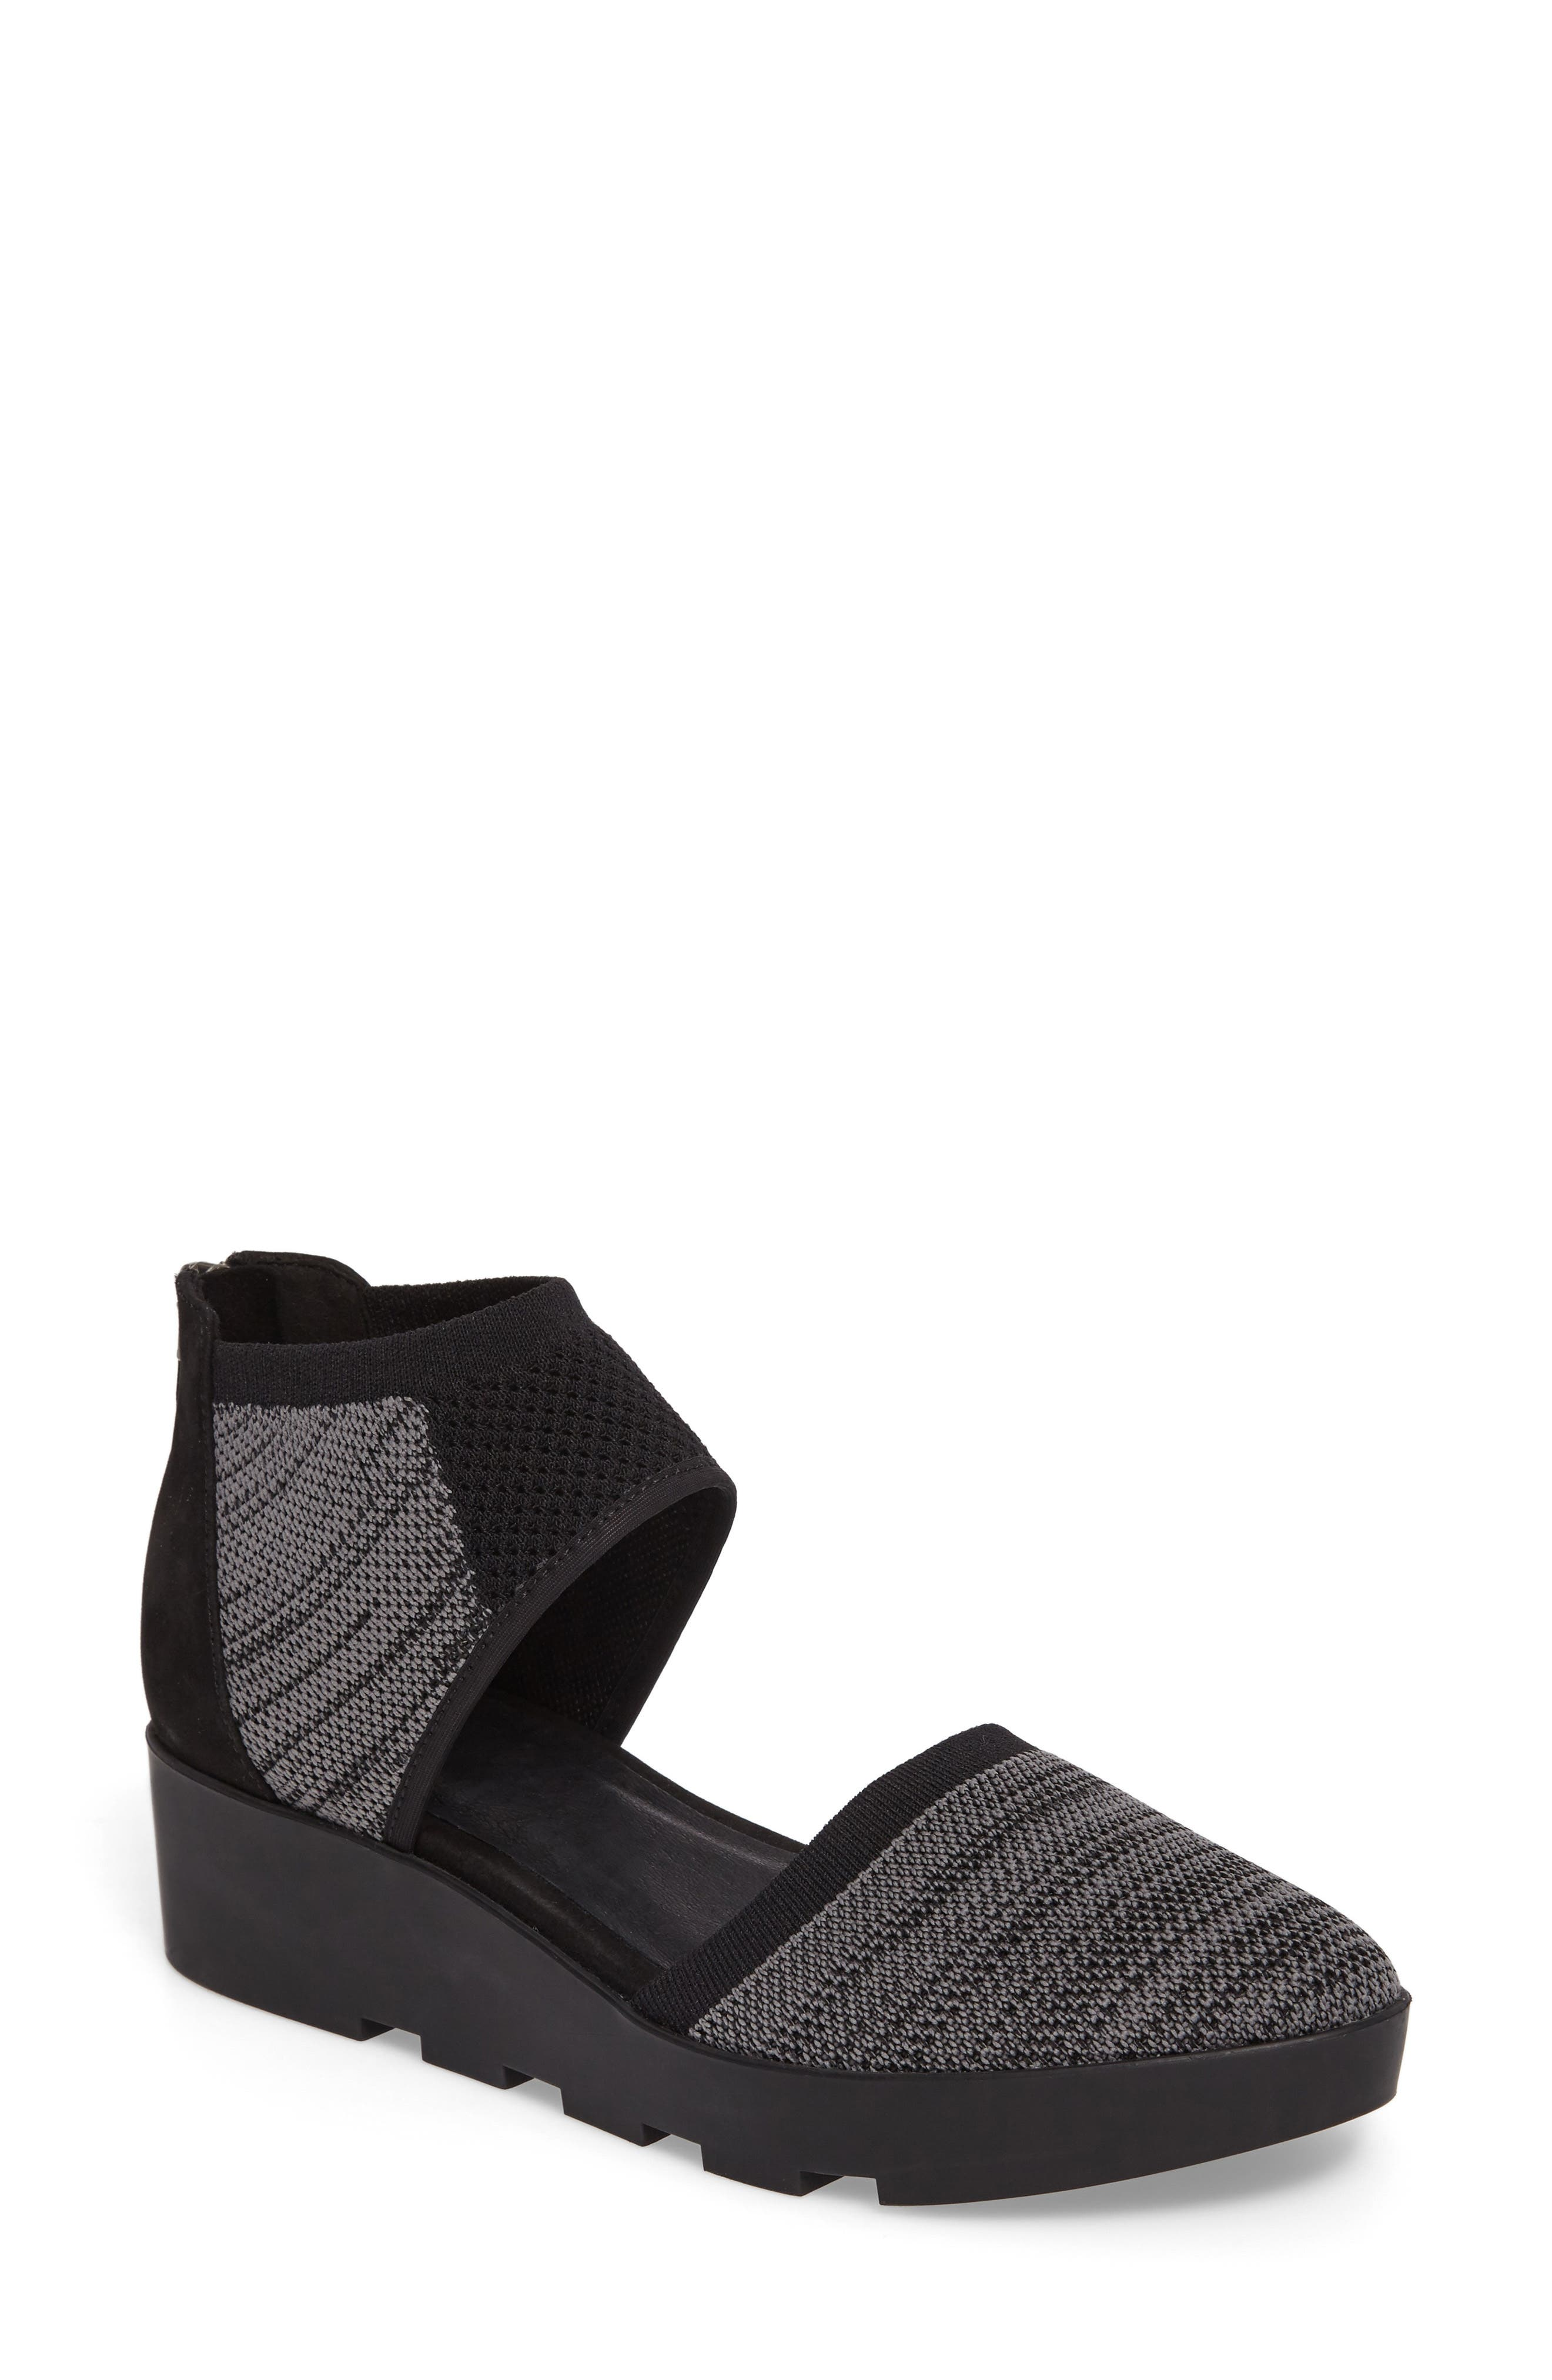 Eileen Fisher Ogden Knit Wedge (Women)